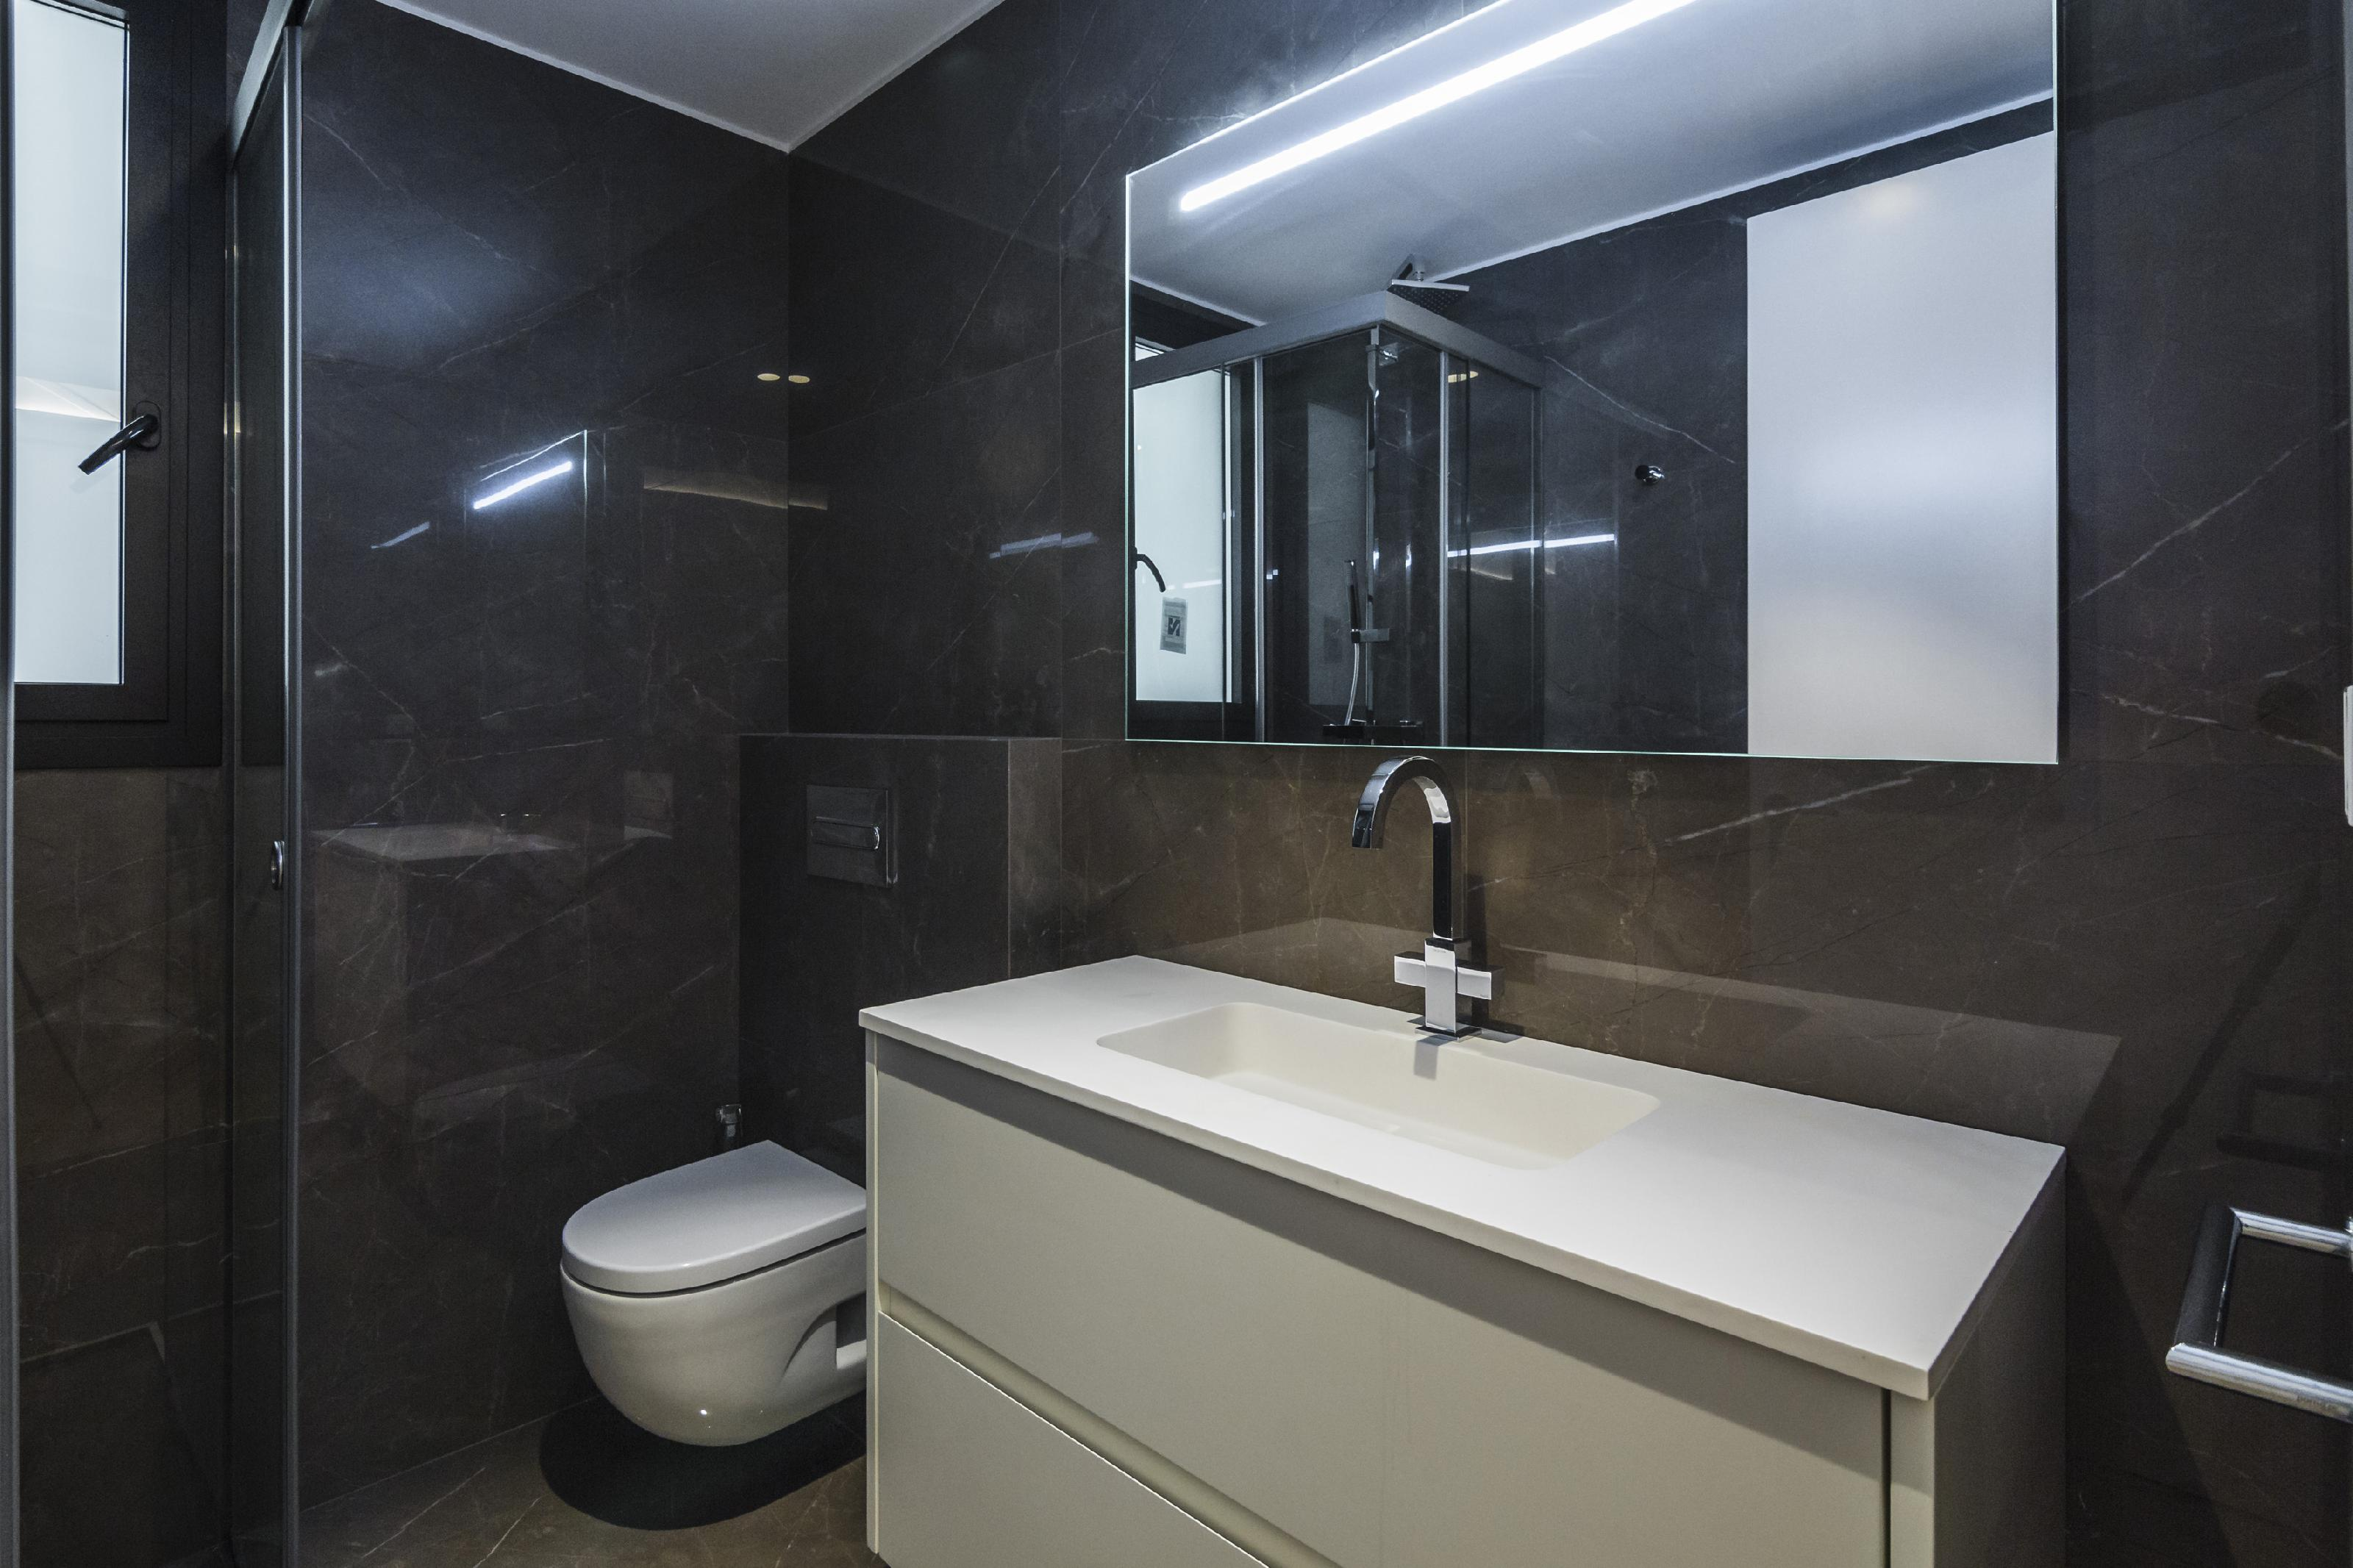 225429 Apartment for sale in Eixample, Dreta Eixample 27